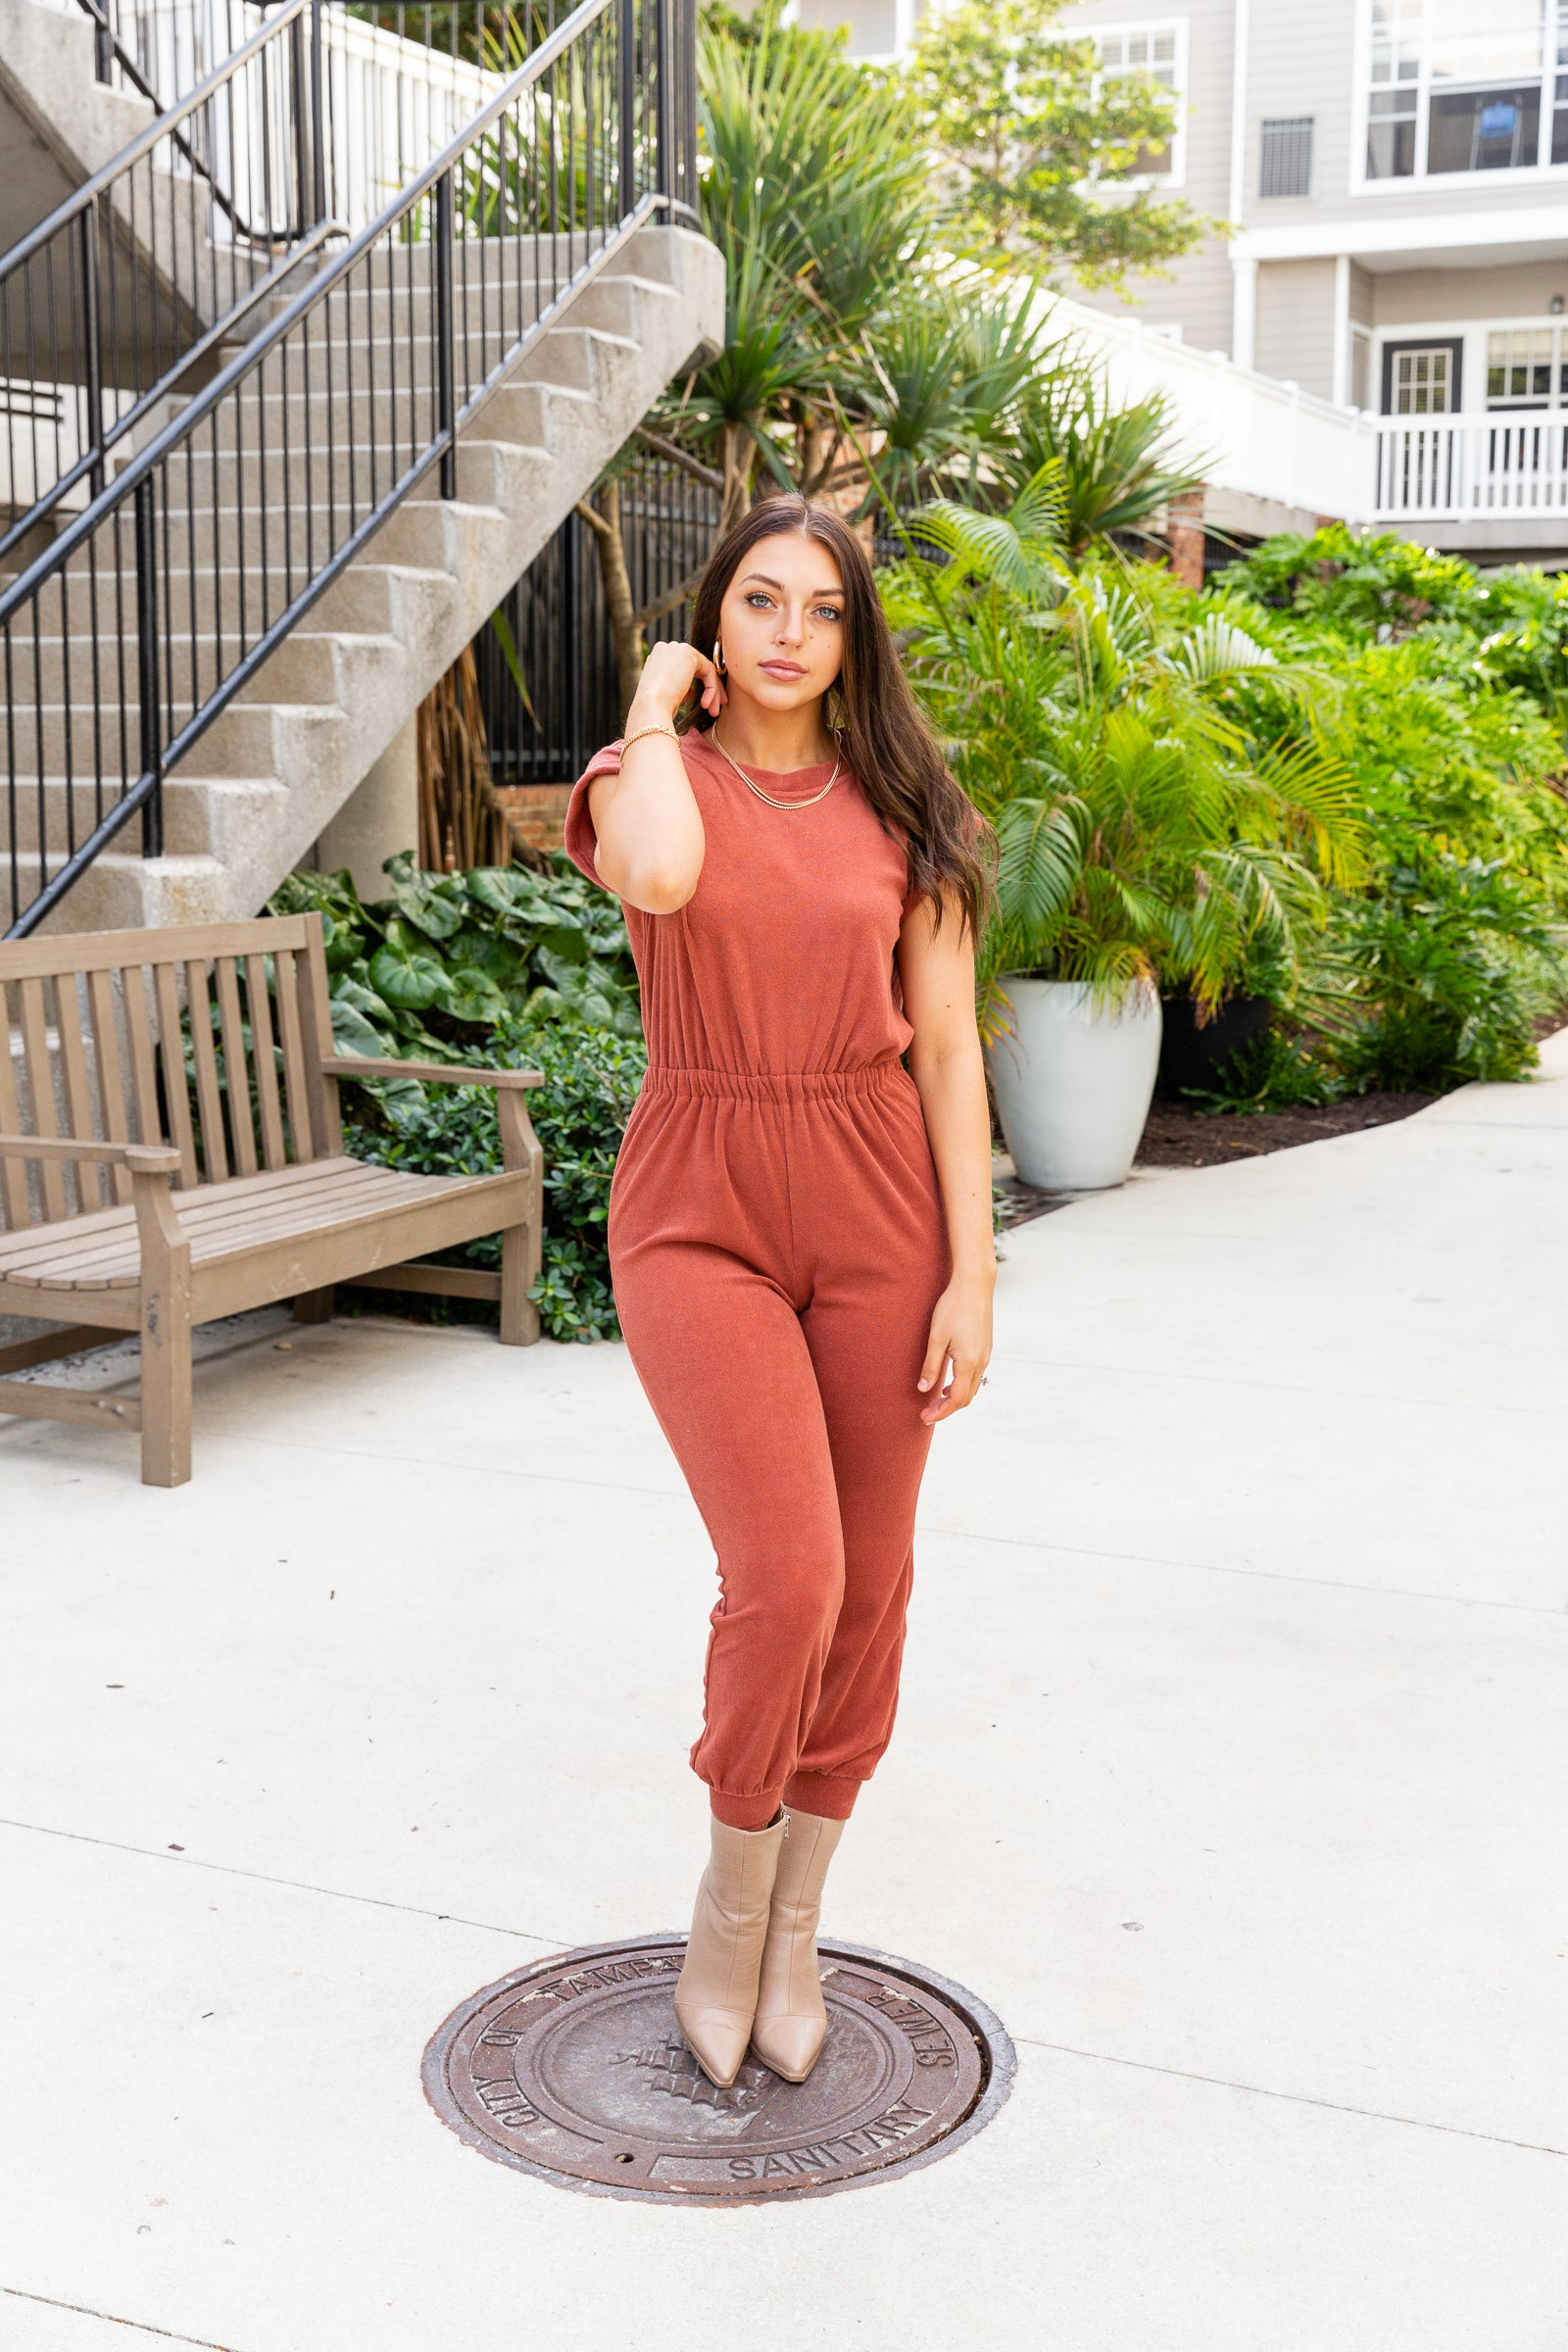 Short sleeves attach to a u-neckline on an oversized and relaxed bodice silhouette before meeting an elastic waistband going down into side pockets and skinny pant legs with a banded ankle cuff.